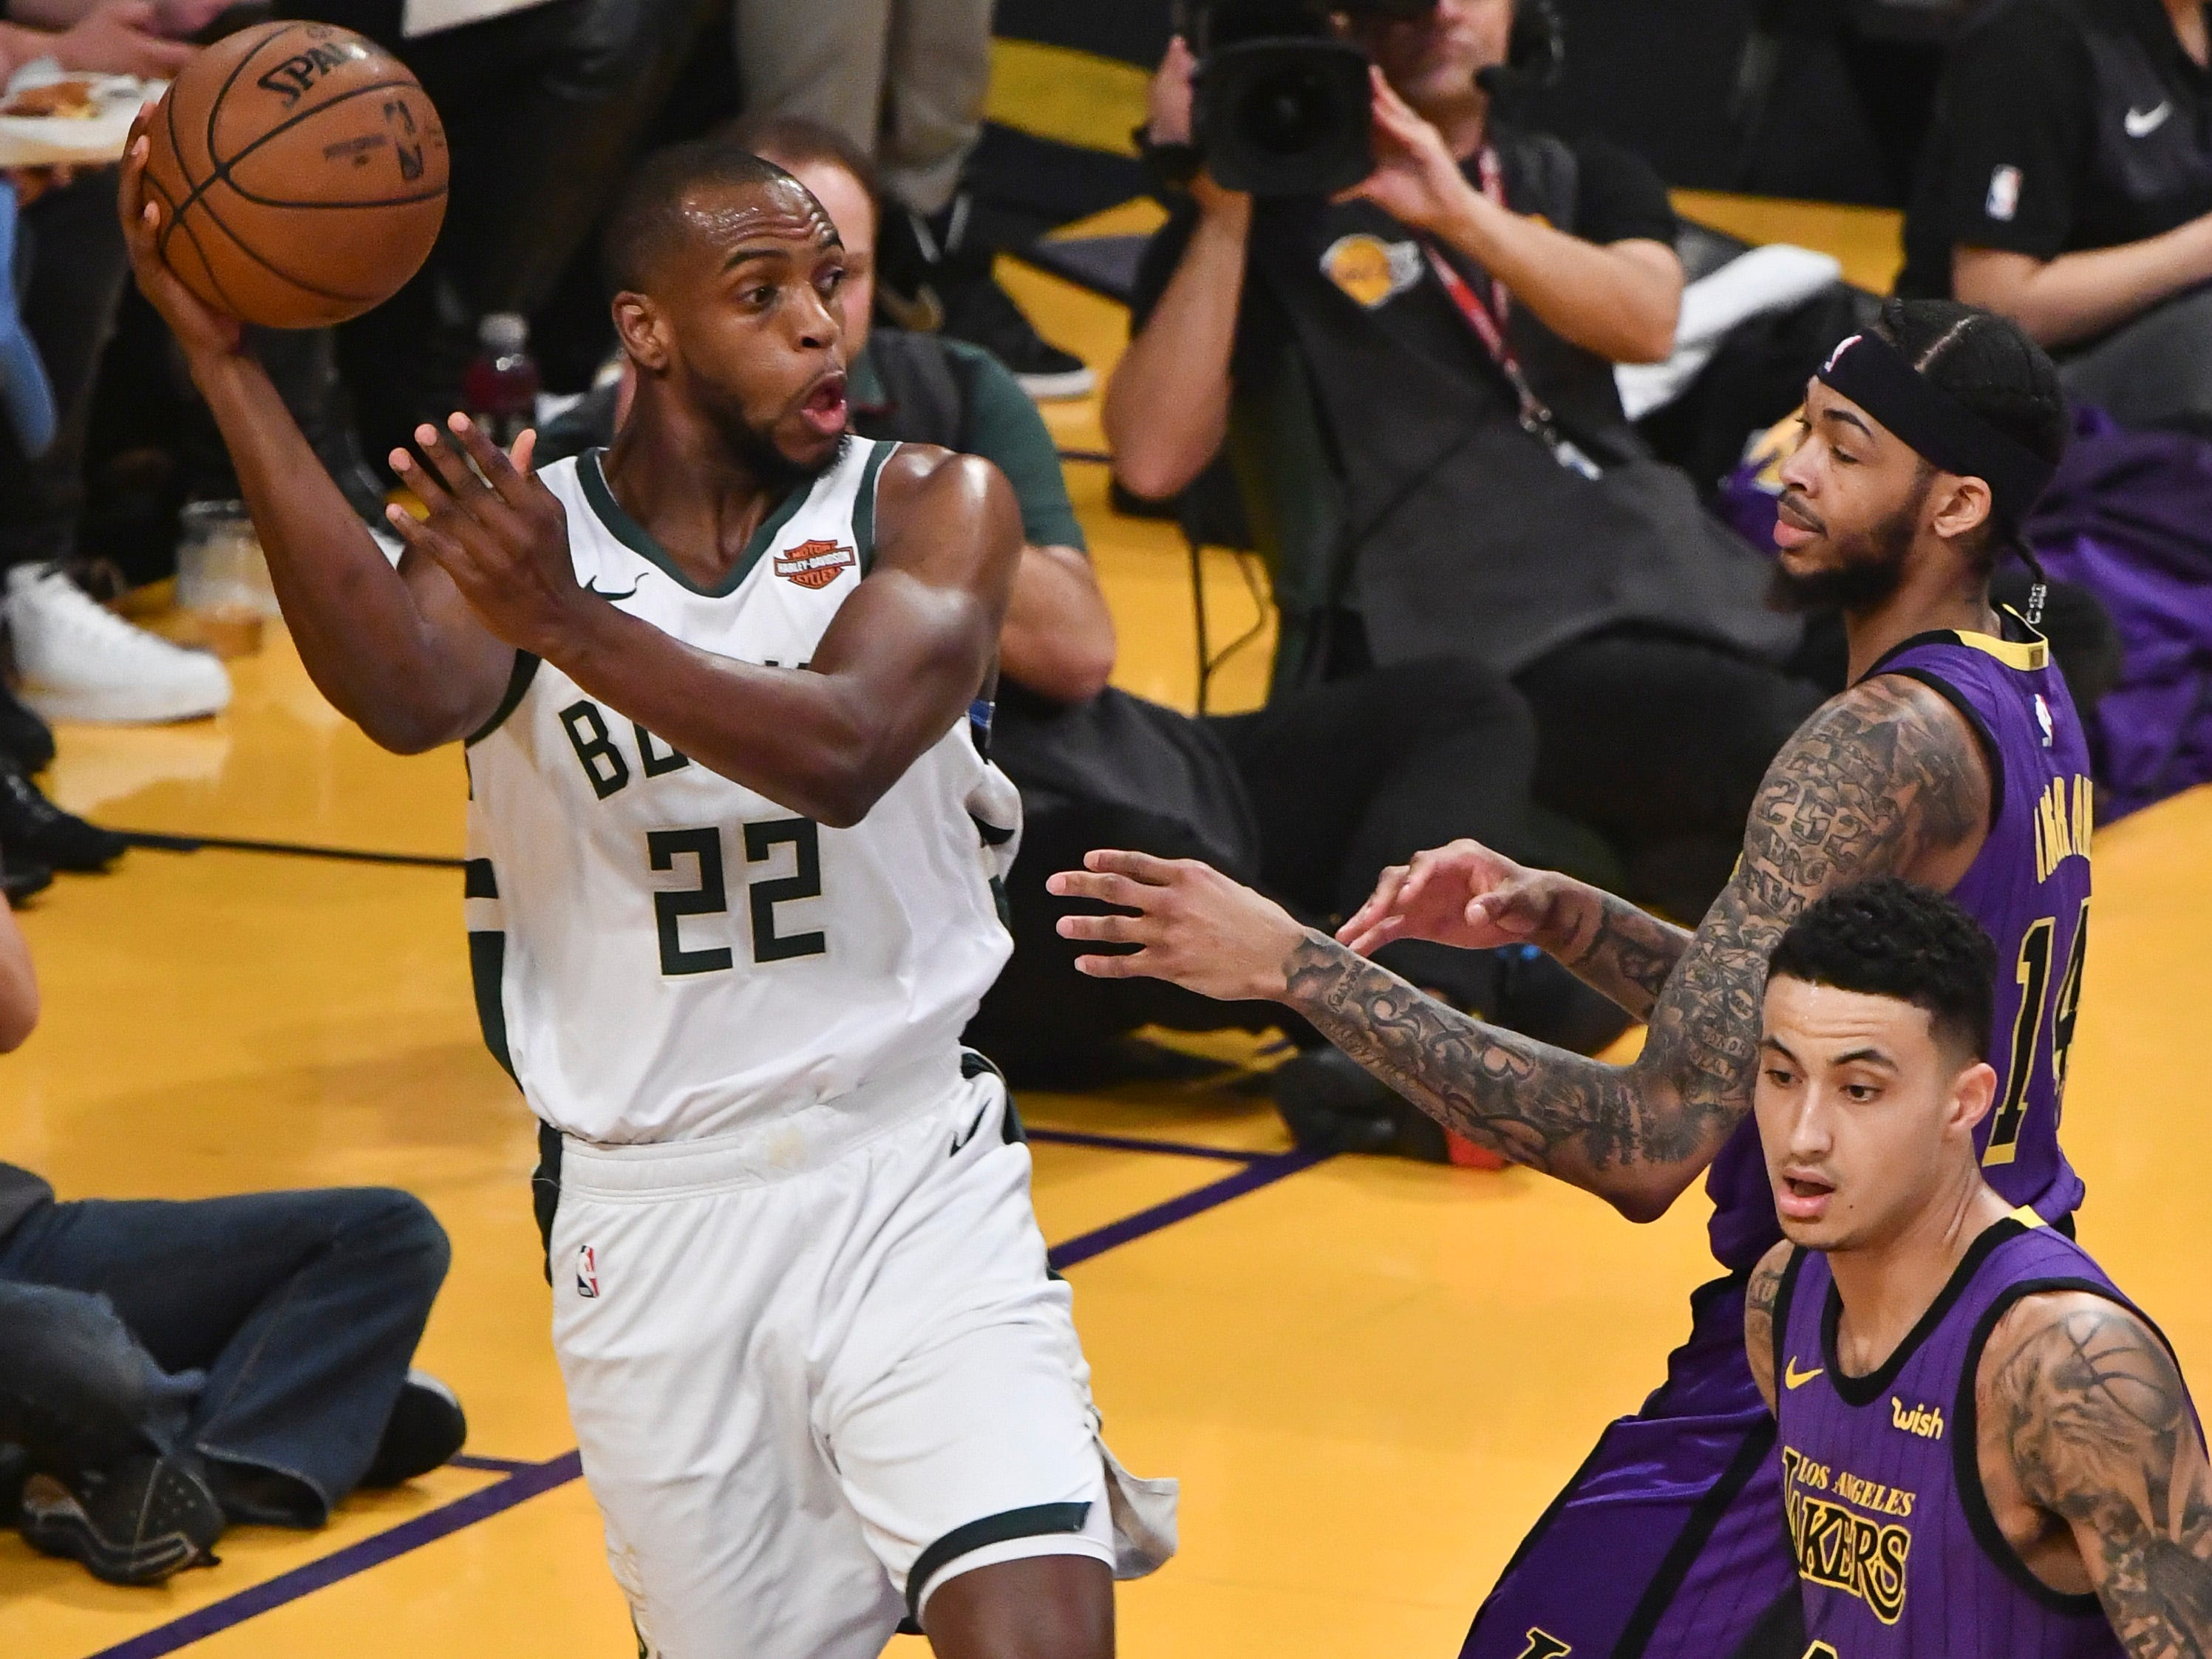 Bucks forward Khris Middleton gets ready to kick a pass out to a teammate after grabbing a rebound for the Lakers' Brandon Ingram got to it during the first quarter.